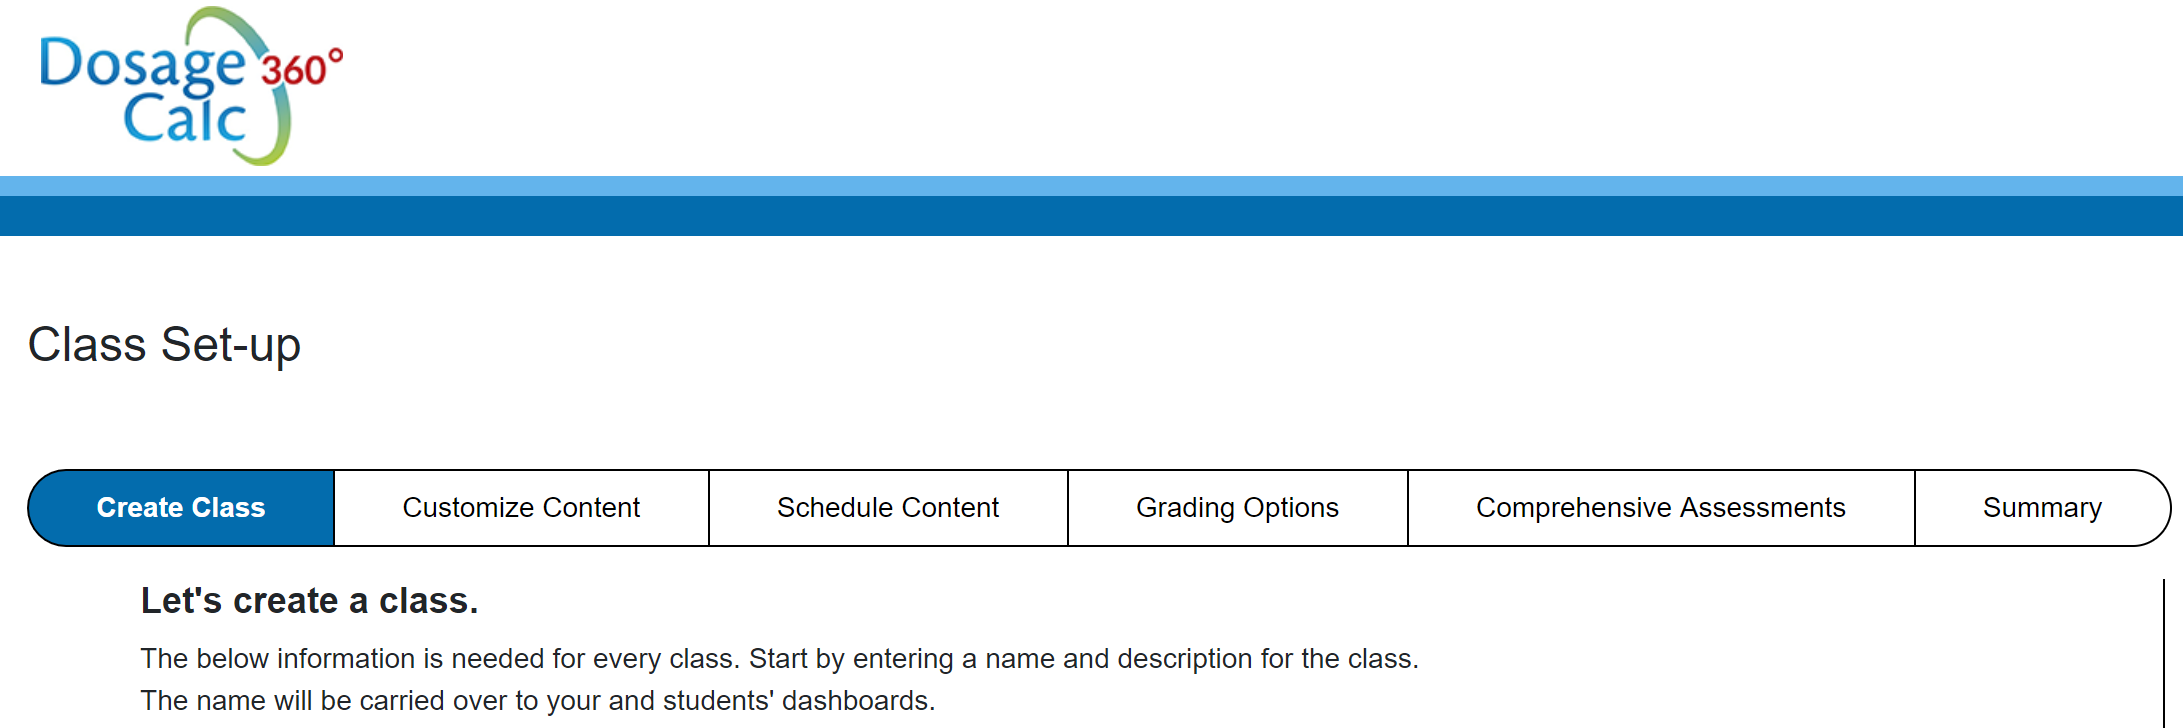 Screenshot of class set-up page in Dosage Calc 360 that shows the first screen in the process of creating a class.